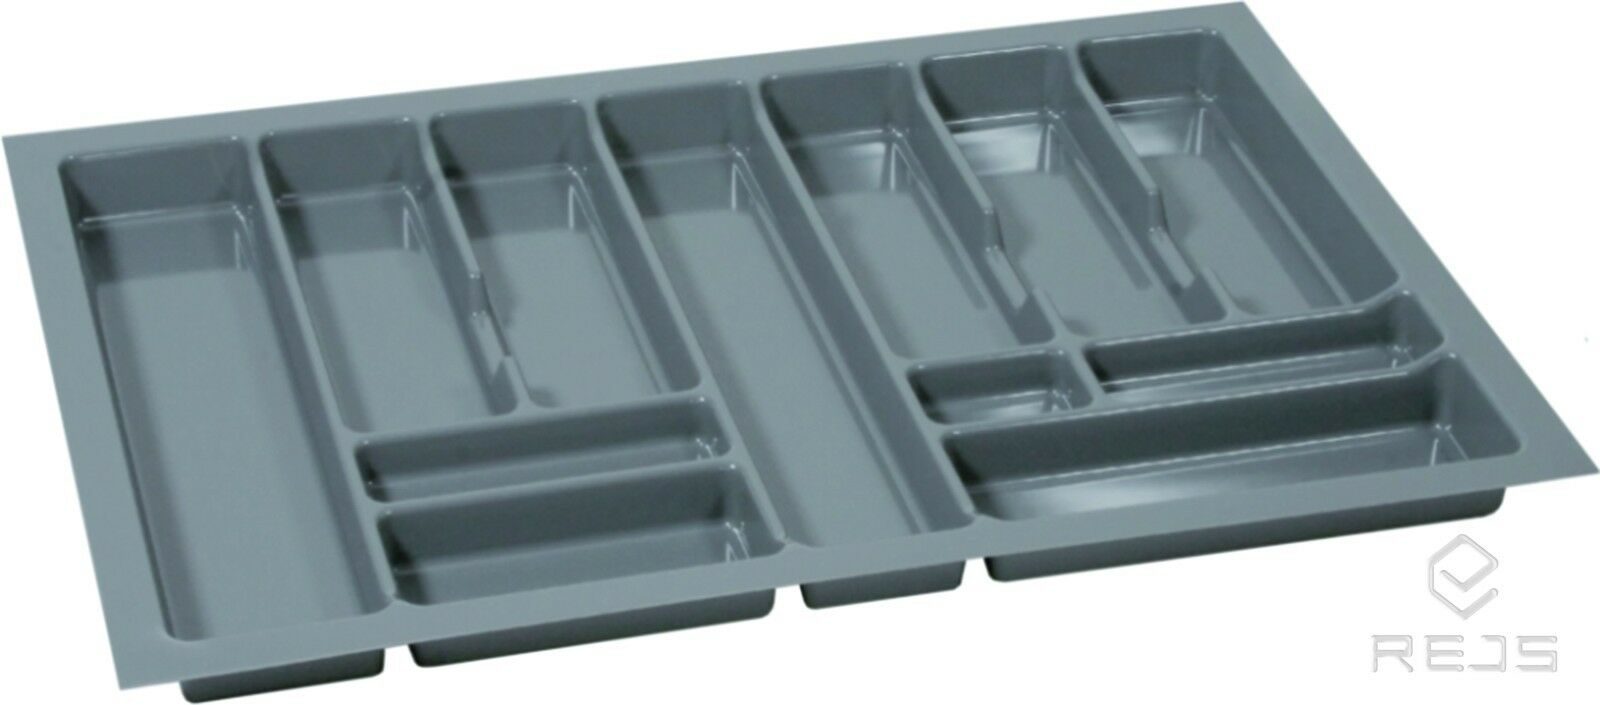 Kitchen Cutlery Tray Pro by REJS 430mm X 490mm - to Fit a 500mm ...